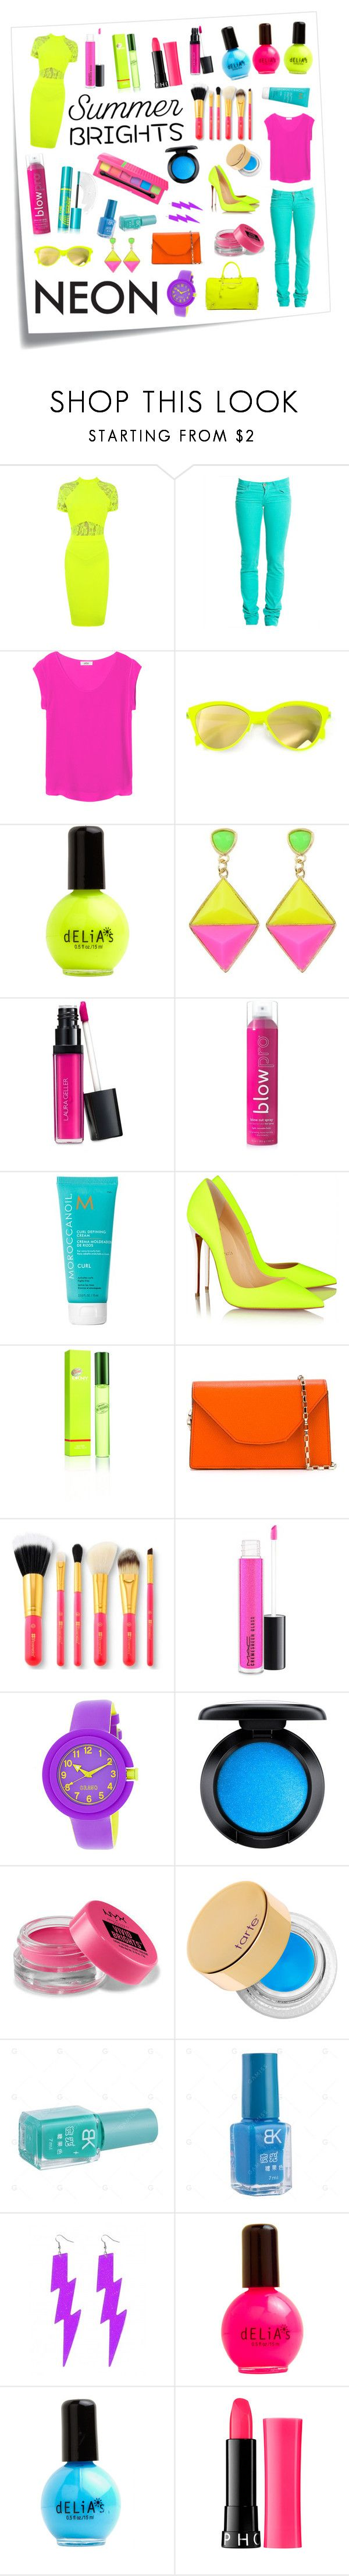 """""""Neon Style"""" by pr267 ❤ liked on Polyvore featuring Post-It, Emanuel Ungaro, Replay, OTTE, Balenciaga, Italia Independent, Laura Geller, blow, Moroccanoil and Christian Louboutin"""